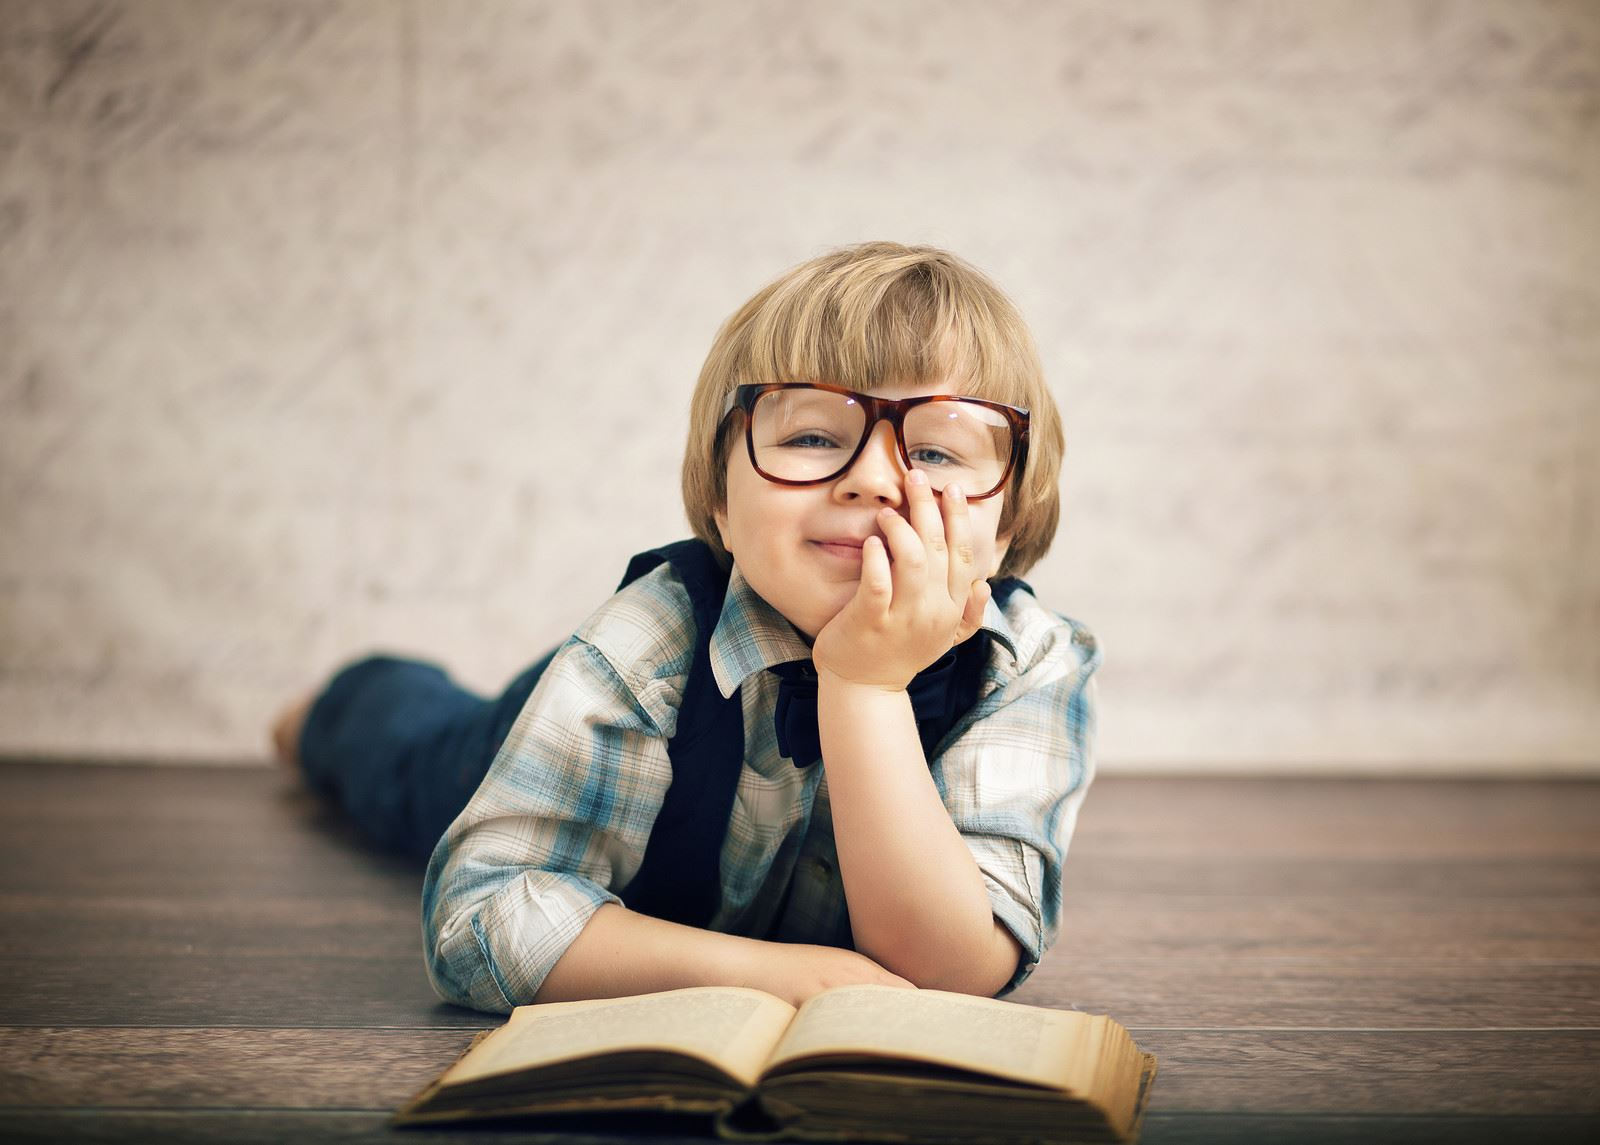 young boy with glasses laying on the floor reading a book